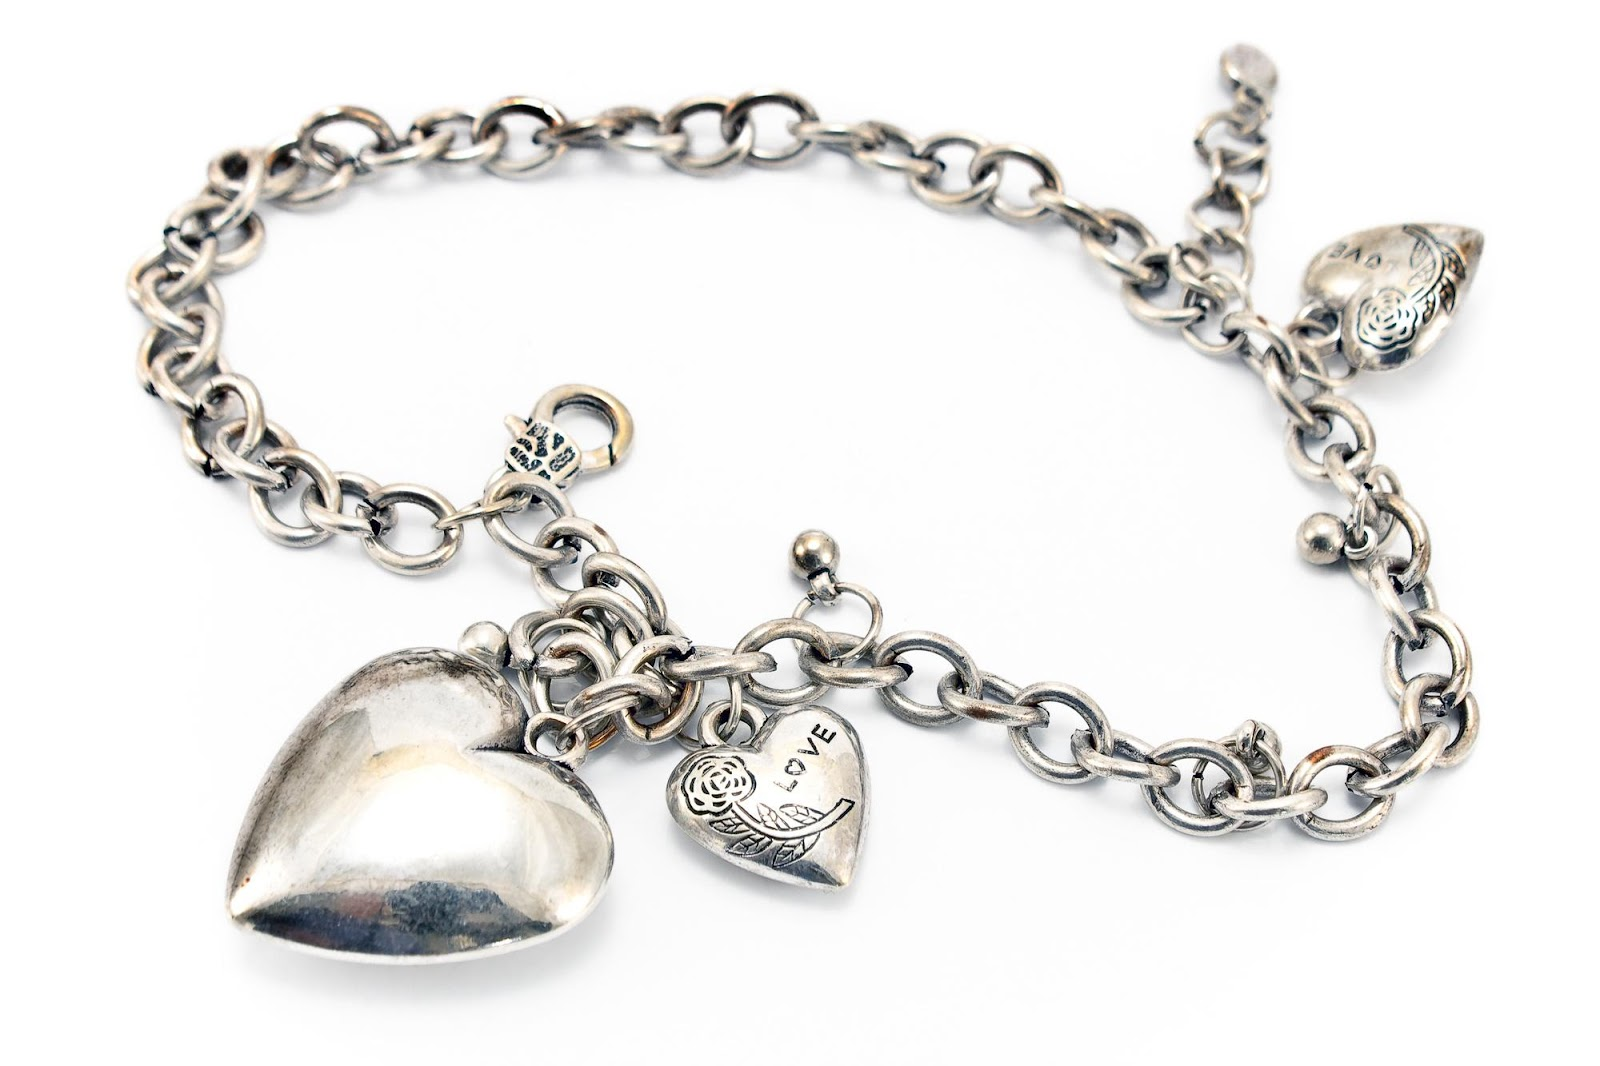 What Is Sterling Silver and Why Does It Make Such Good Jewelry?